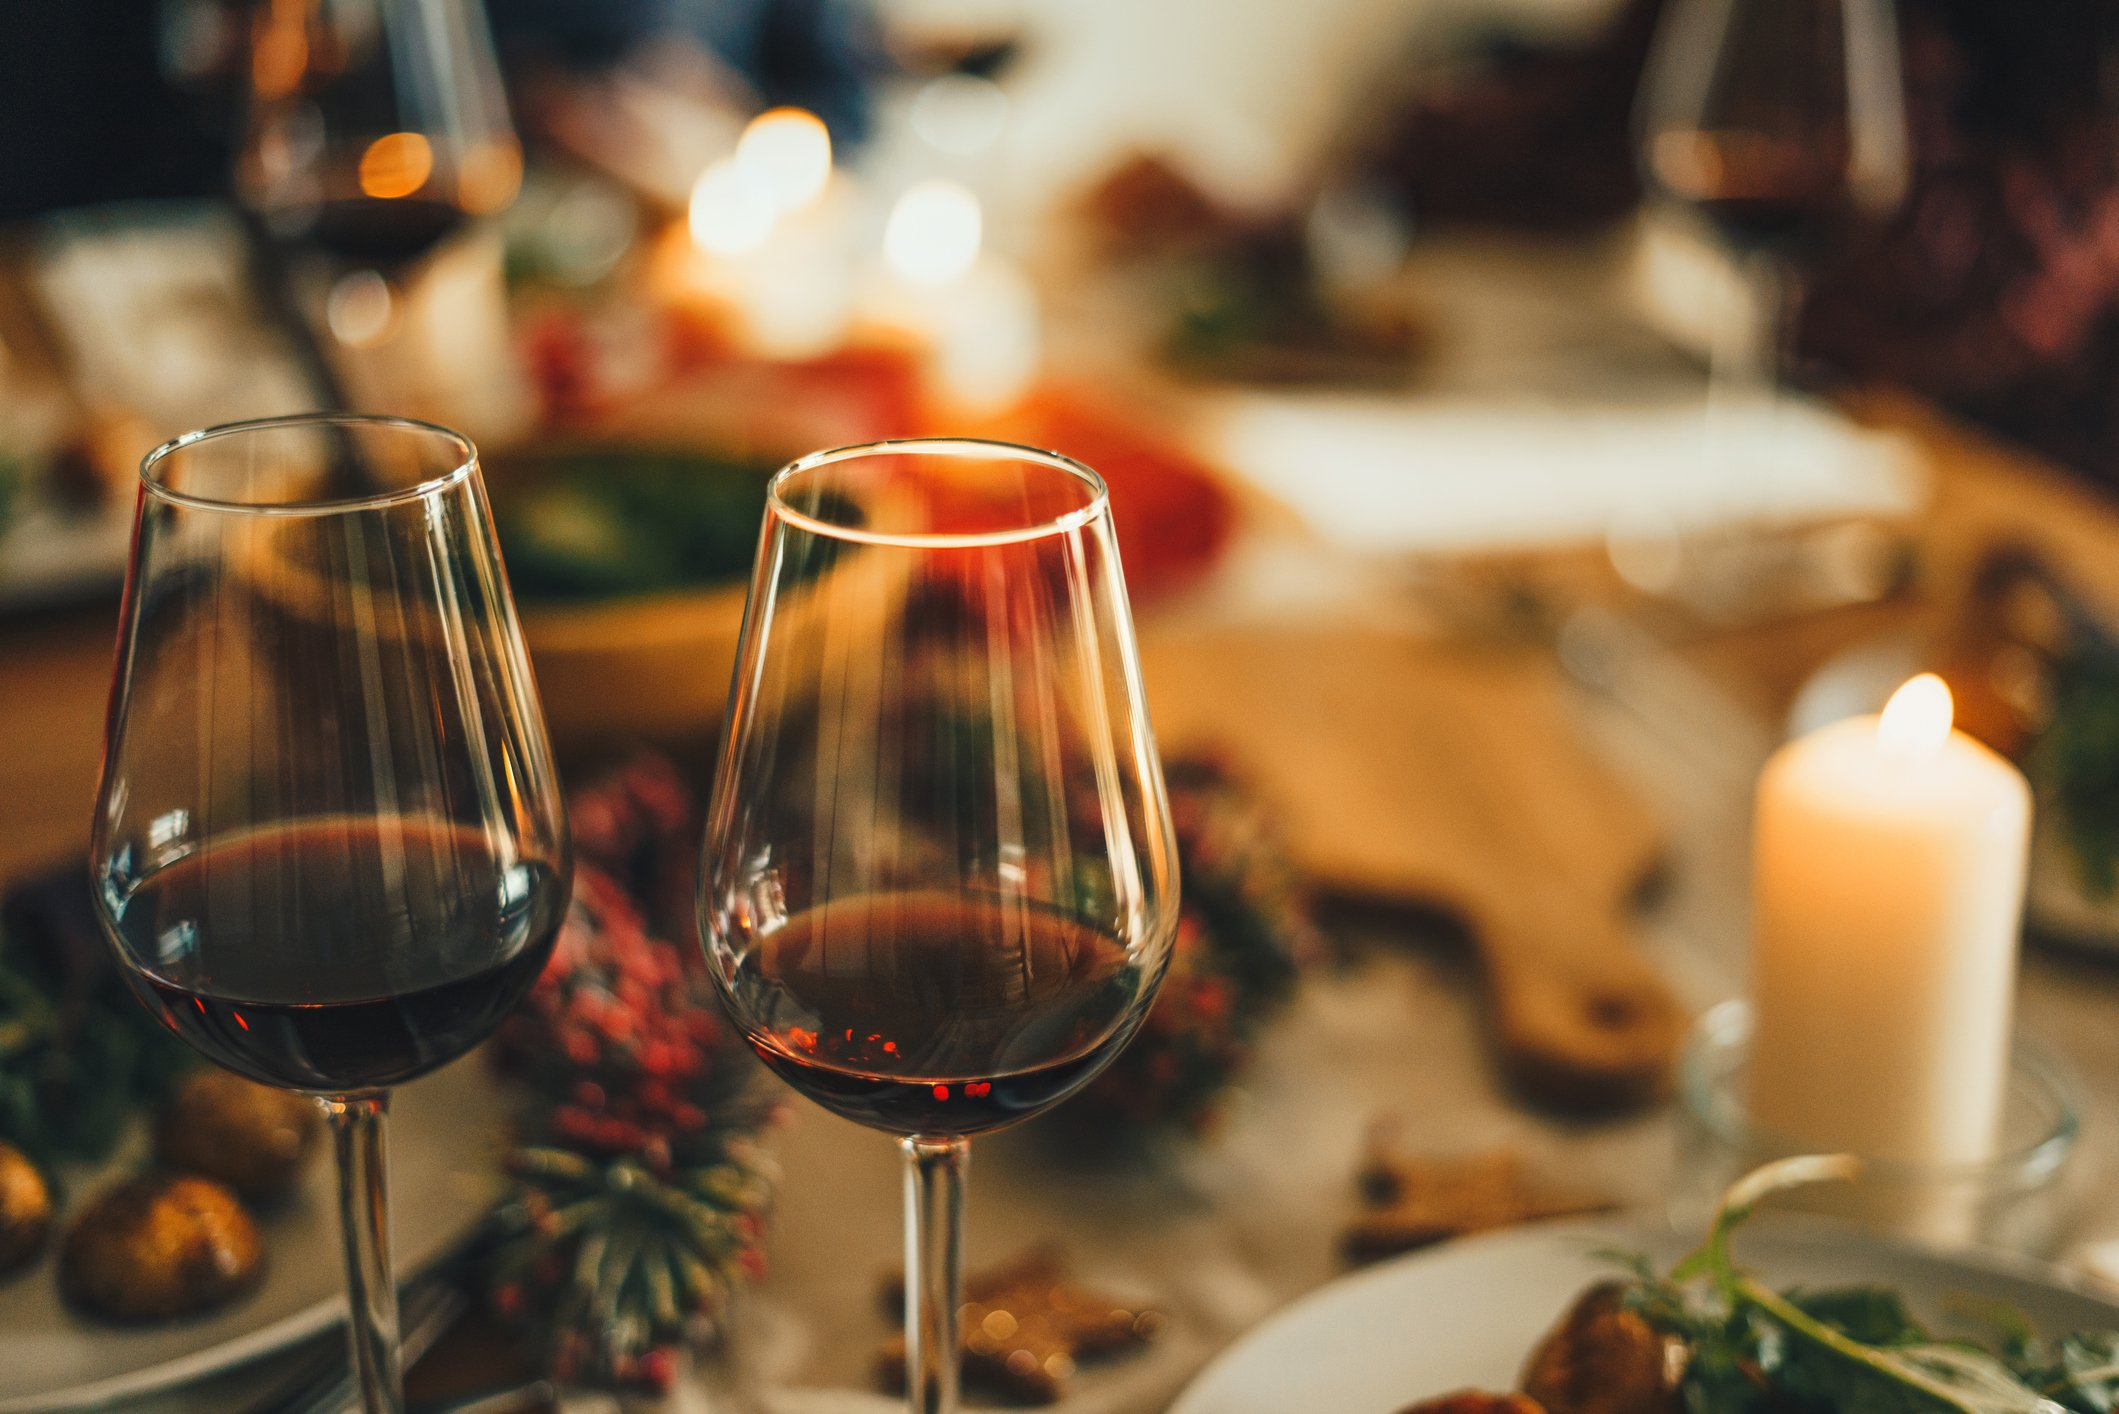 A close up shot of red wine glasses at Christmas dinner table. | Photo: Getty Images